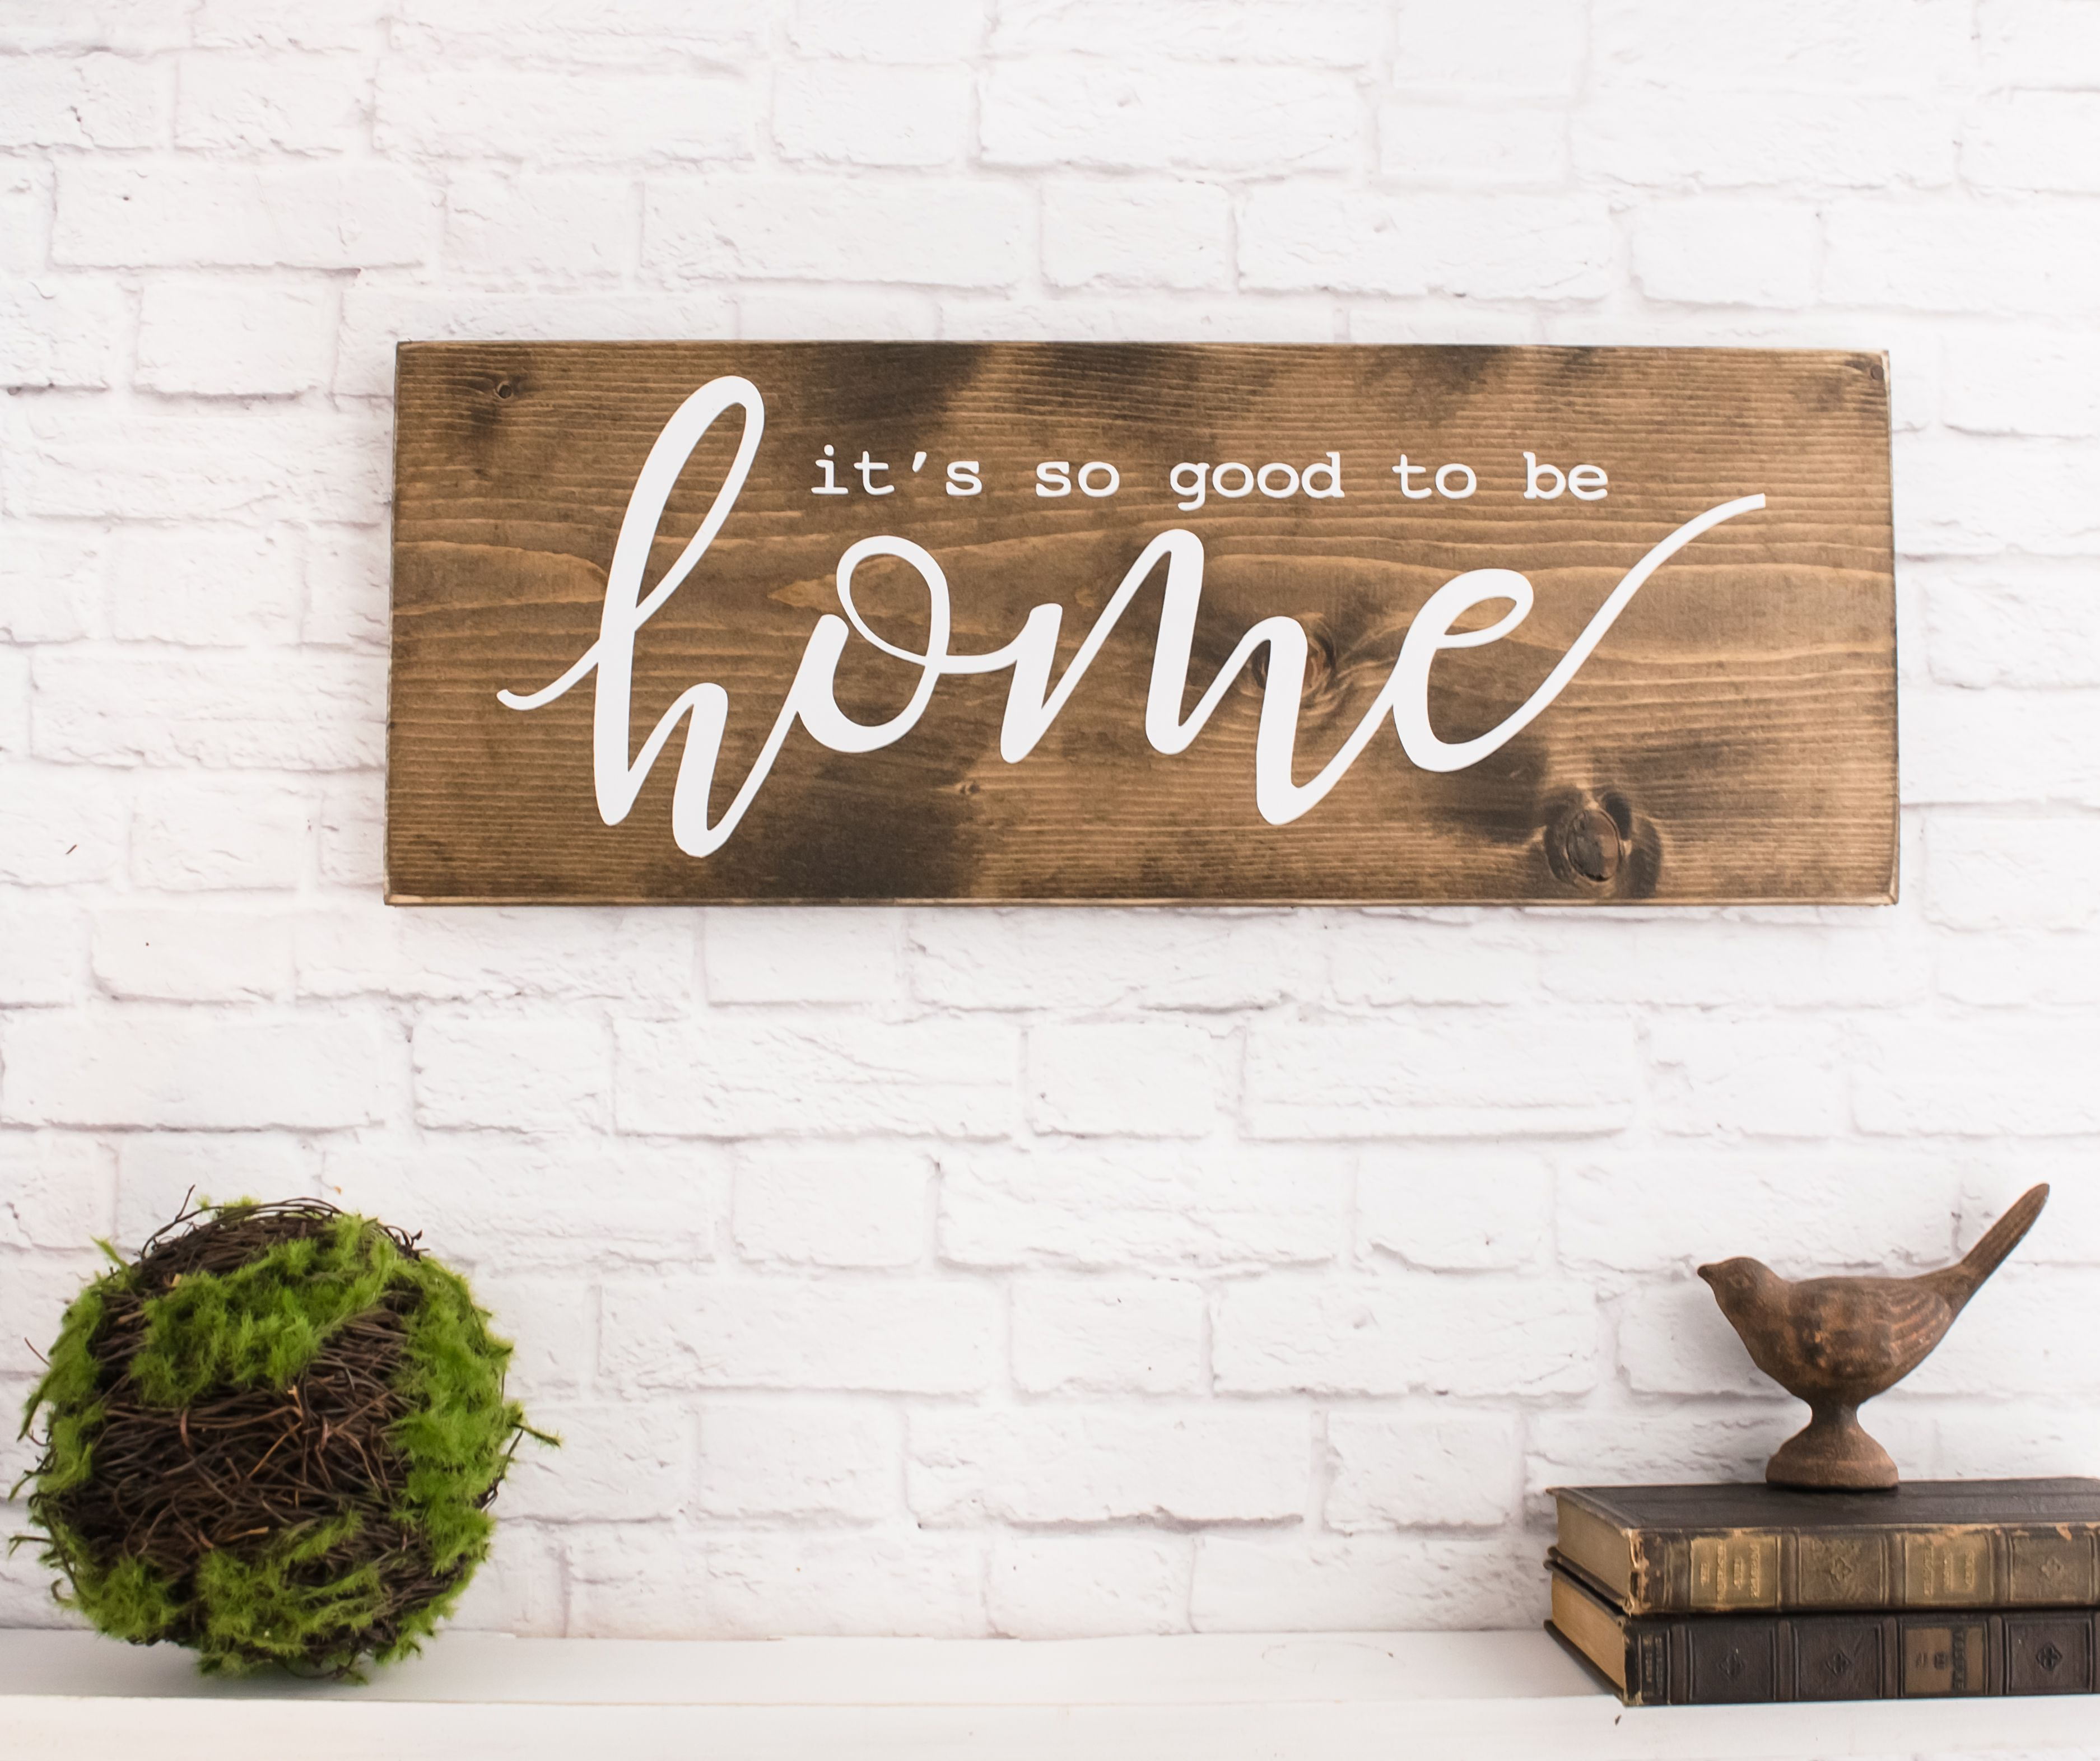 Buy A Hand Made So Good To Be Home Wood Sign Saying